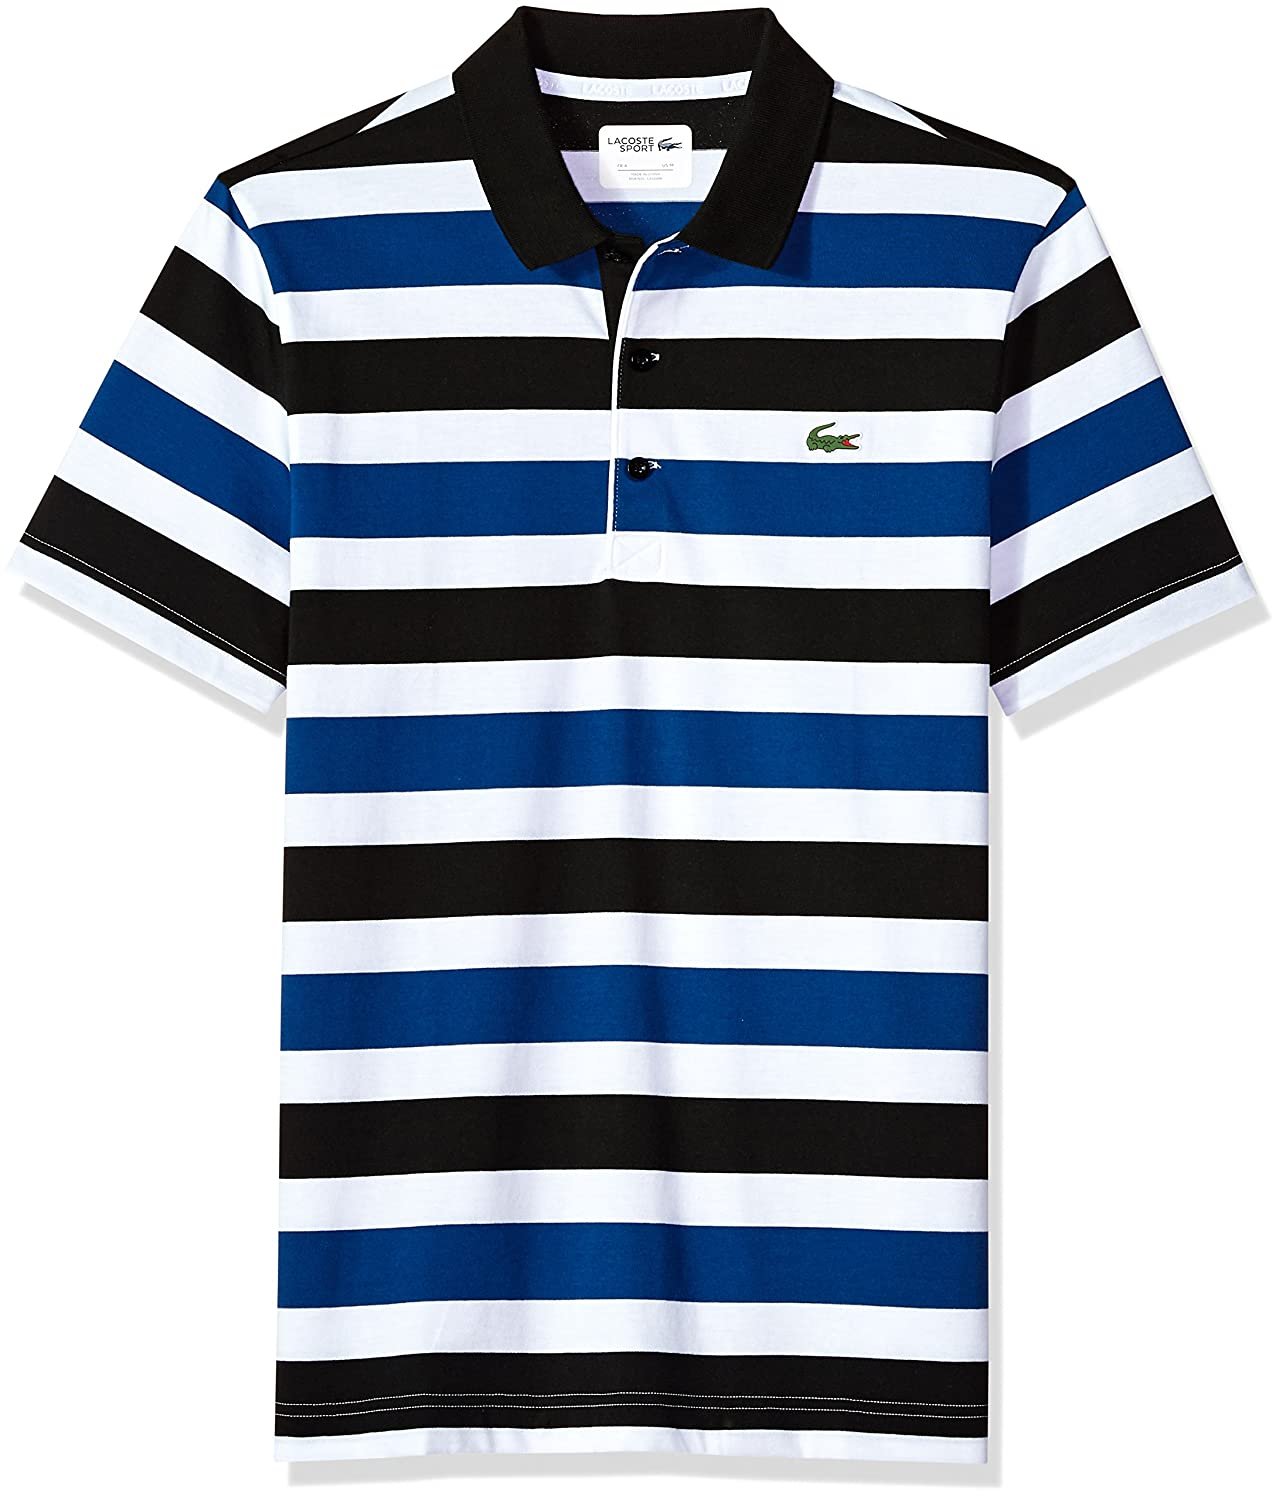 Lacoste Men s Short Sleeve Jersey Raye with Multi Color All Over Stripes  Polo, DH3307 free a9e3731b55b3